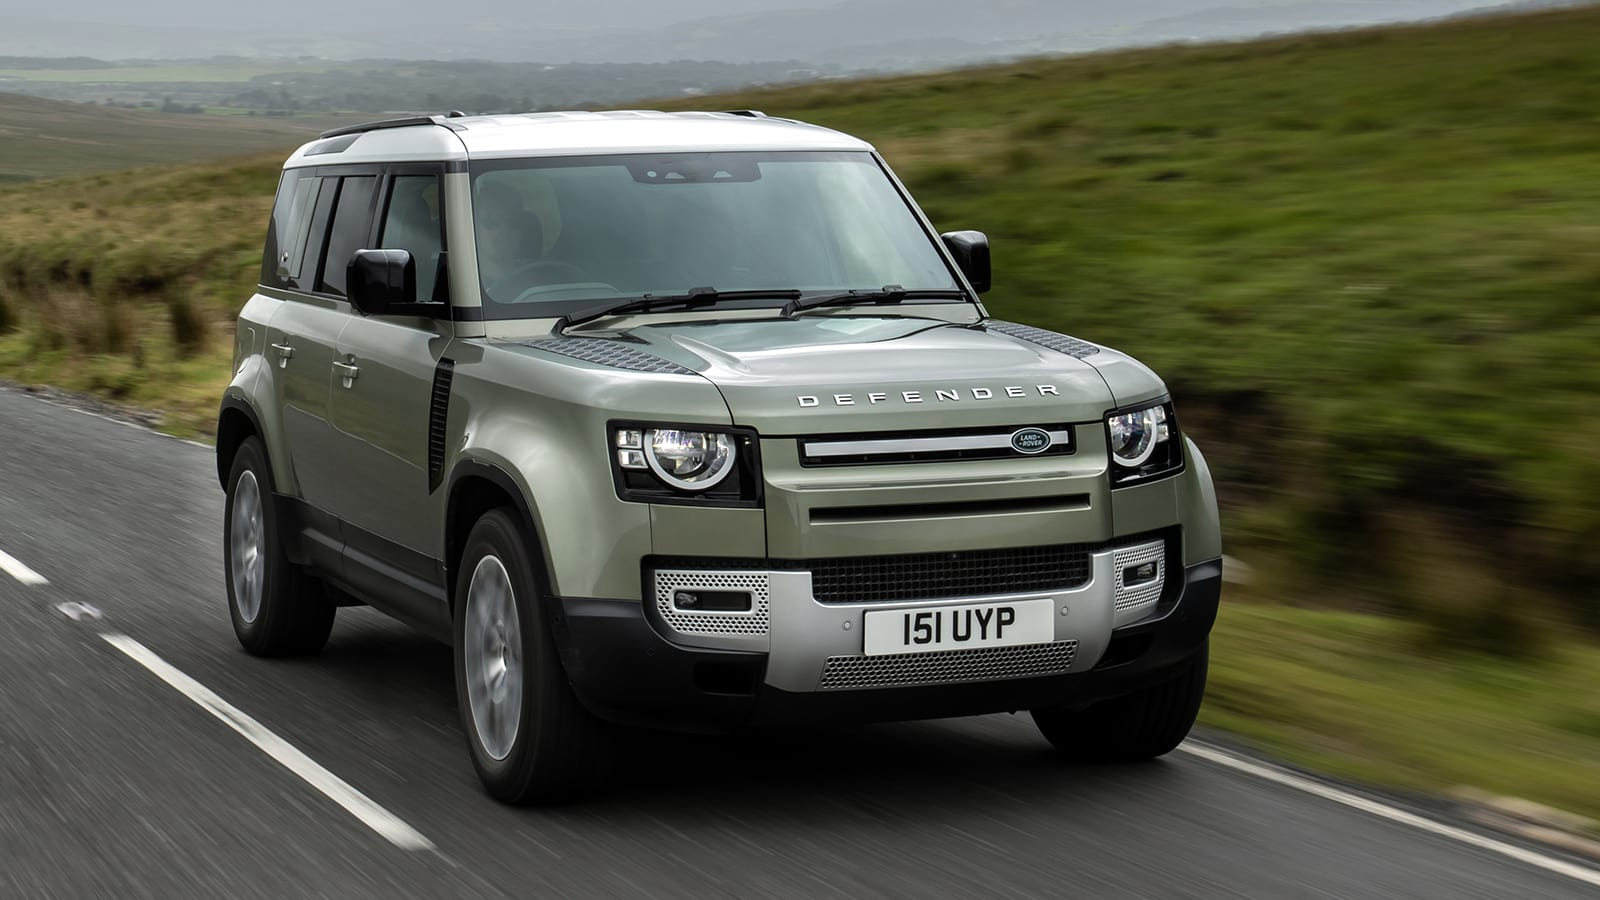 2021 Land Rover Defender Review | Price, specs, features ...